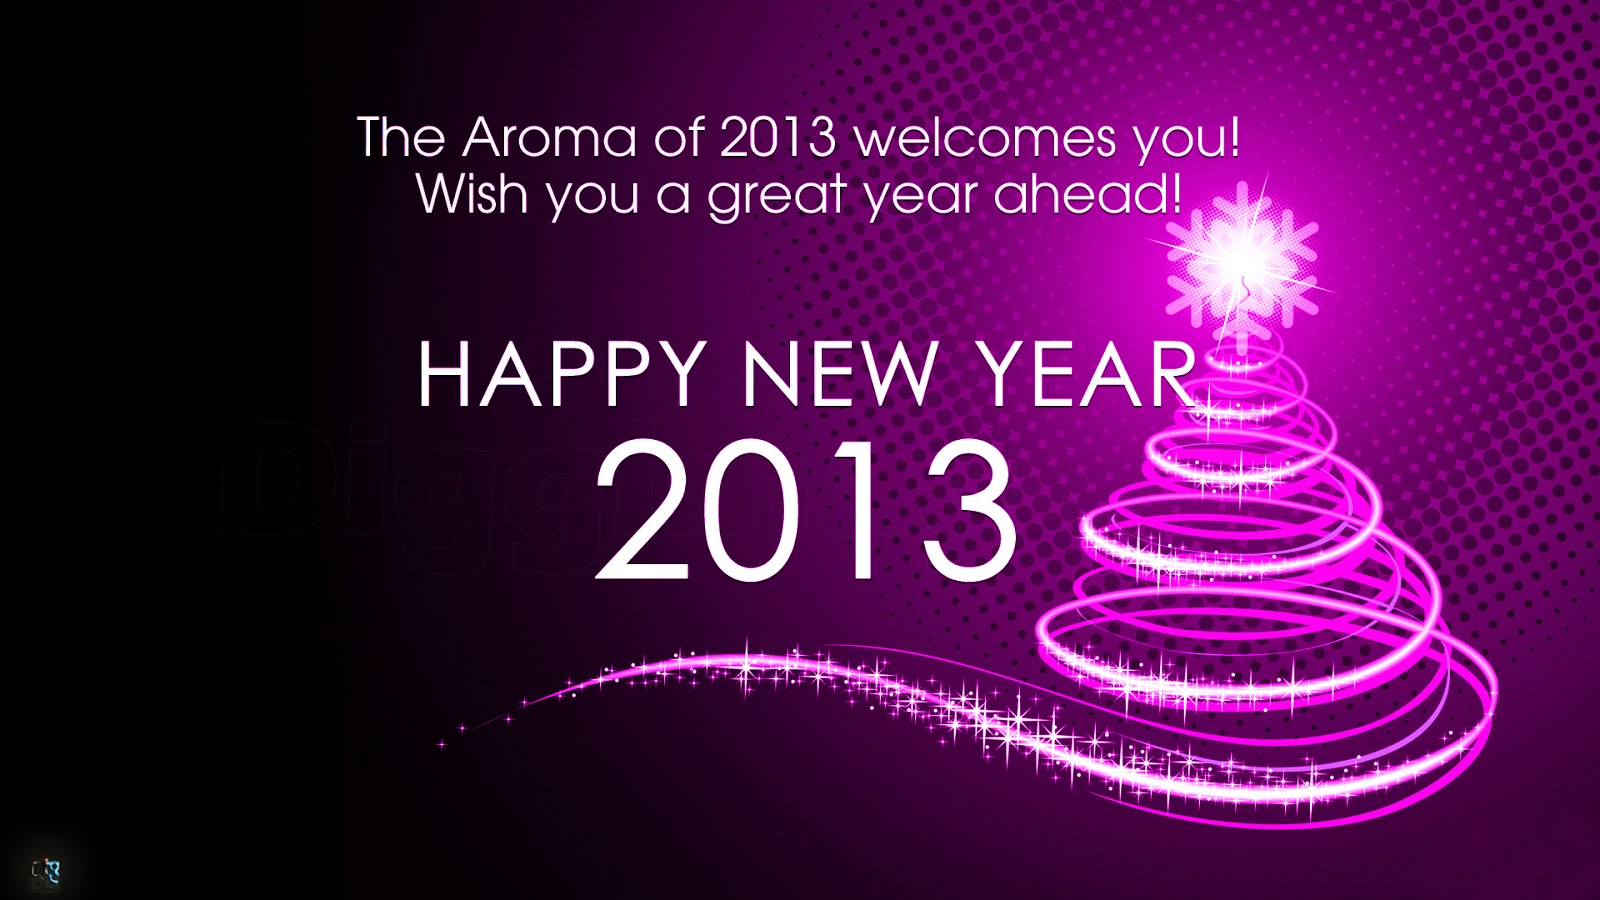 Happy New Year 2013 Tamil Wishes Sms Greetings And Wallpapers. 1600 x 900.Funny Happy New Years E-cards